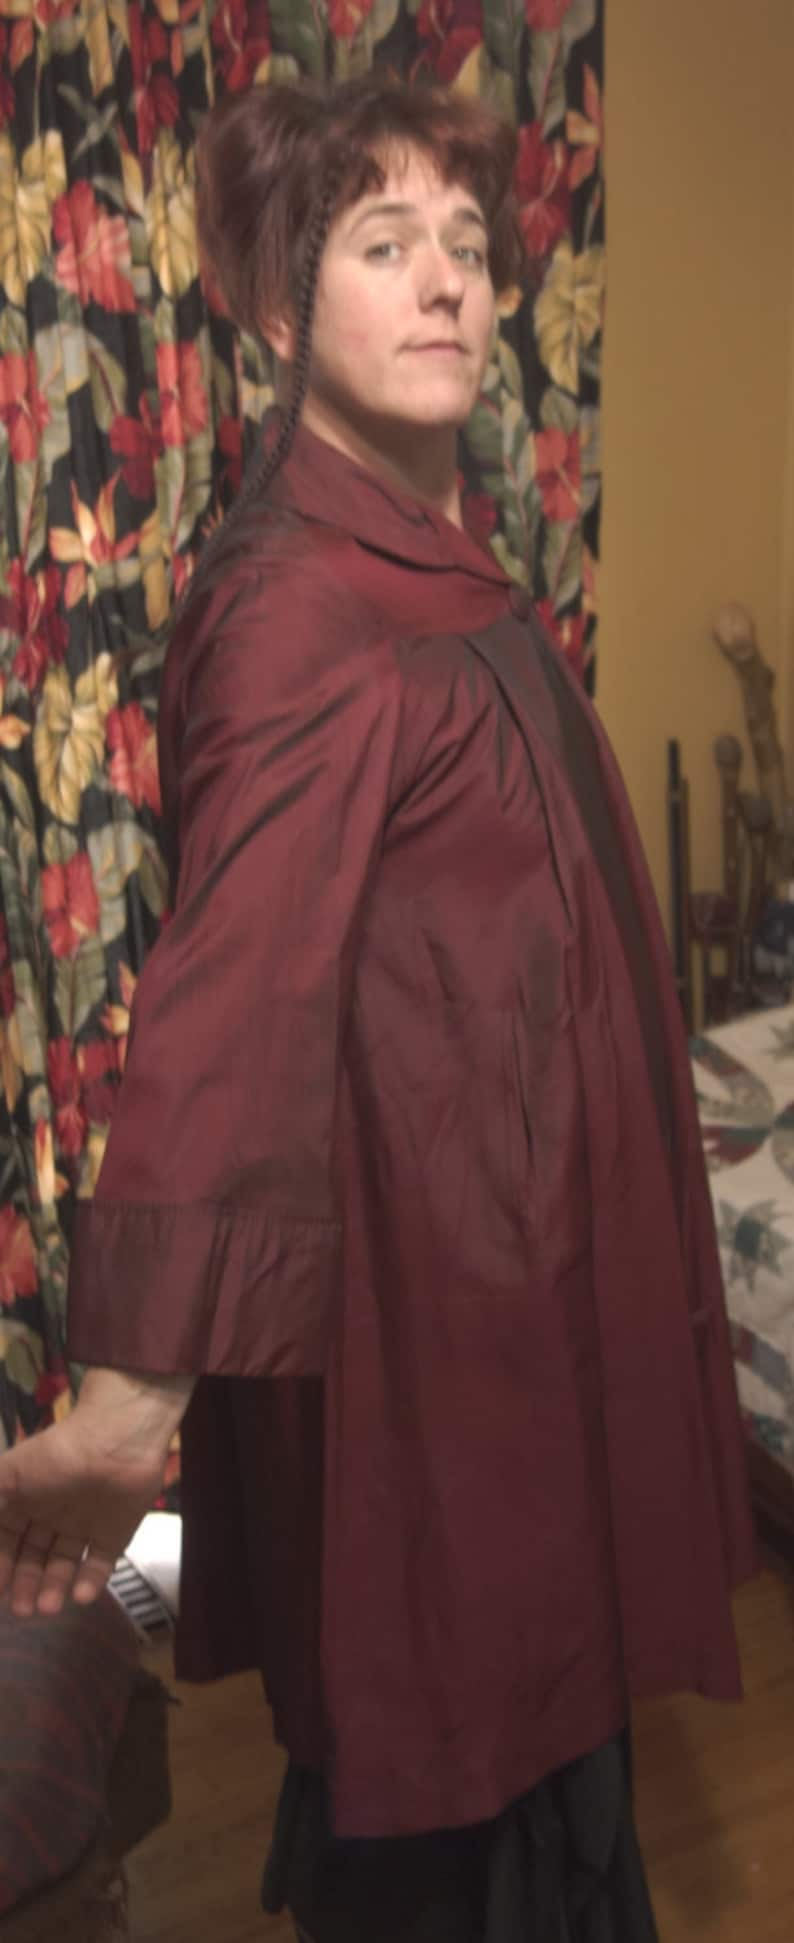 Large 40 Bust 1940s Vintage Red Acetate Rain Coat Swing Style by Addis Co of Syracuse NY Viva Las Vegas Pin Up Burlesque